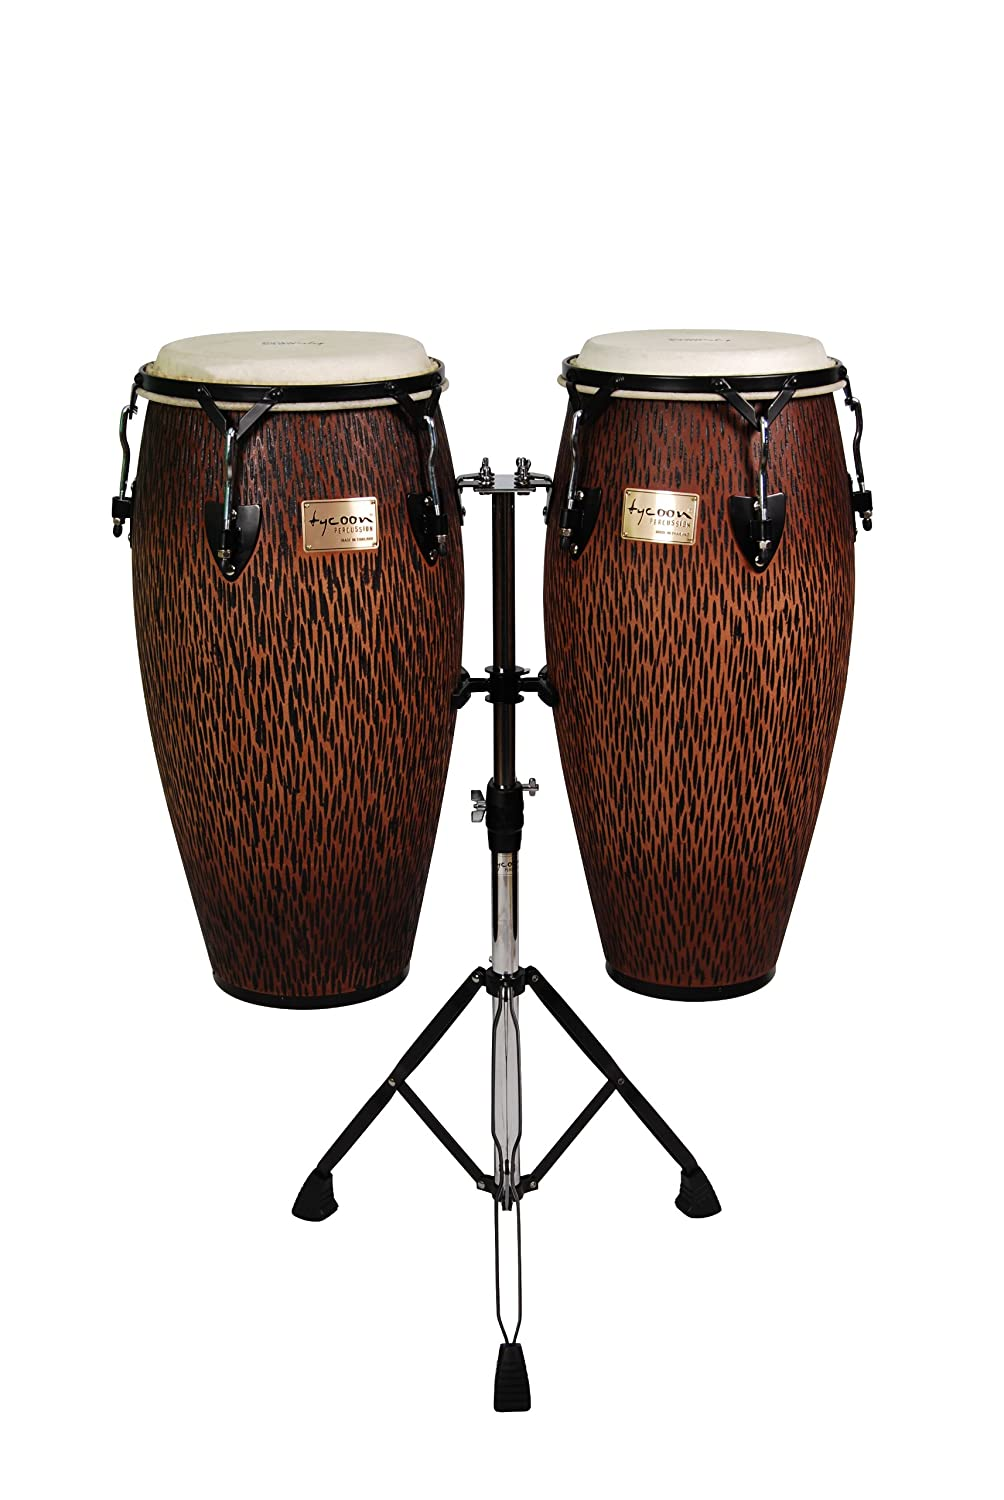 Tycoon Percussion STCS-B CO/D 10-Inch Requinto and 11-Inch Quinto Conga Drum - Chiseled Orange